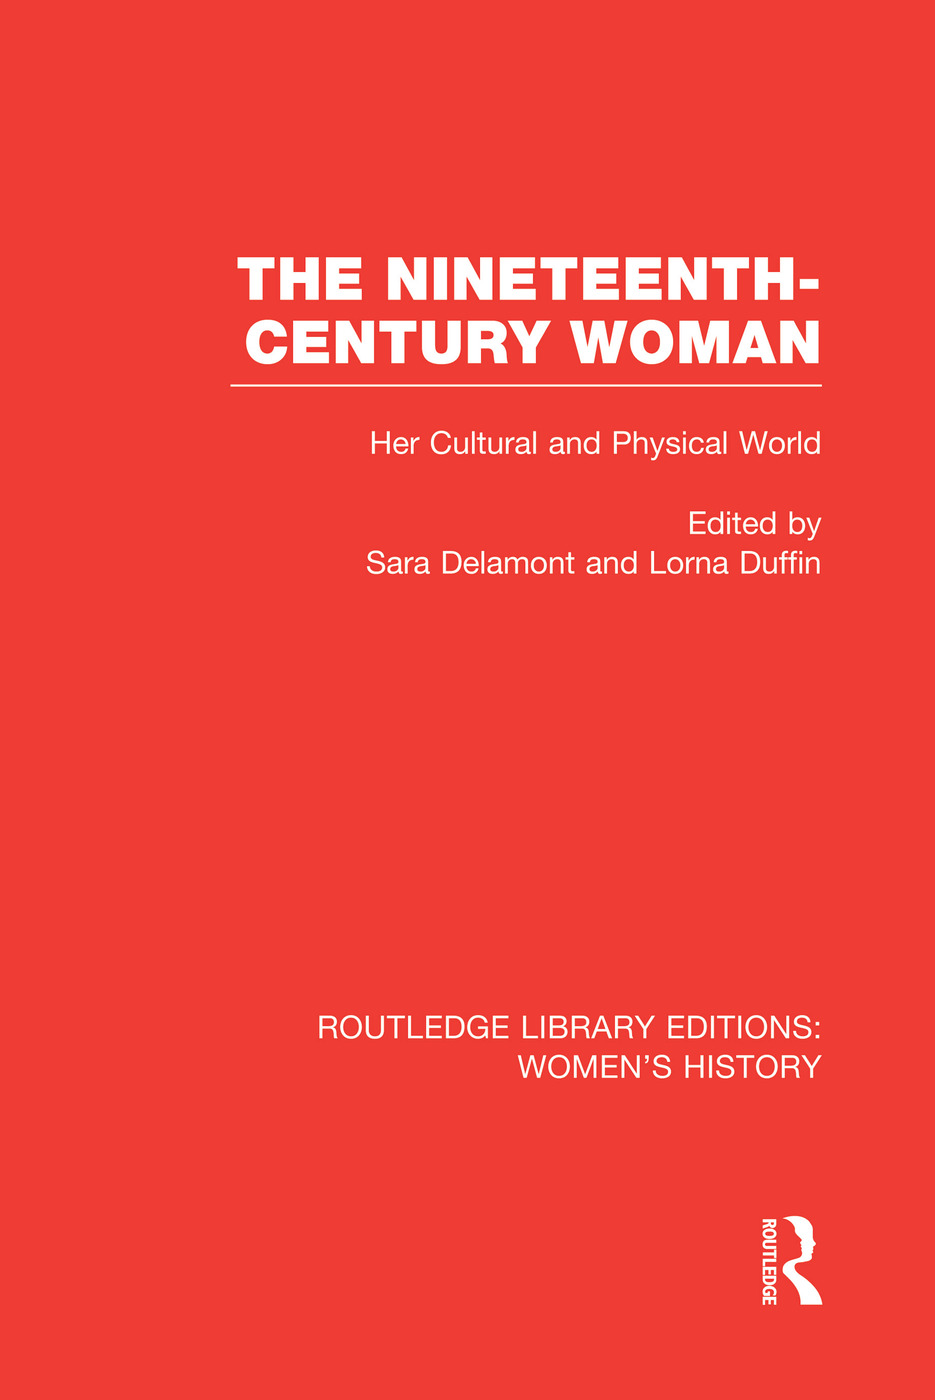 The Nineteenth-century Woman: Her Cultural and Physical World book cover